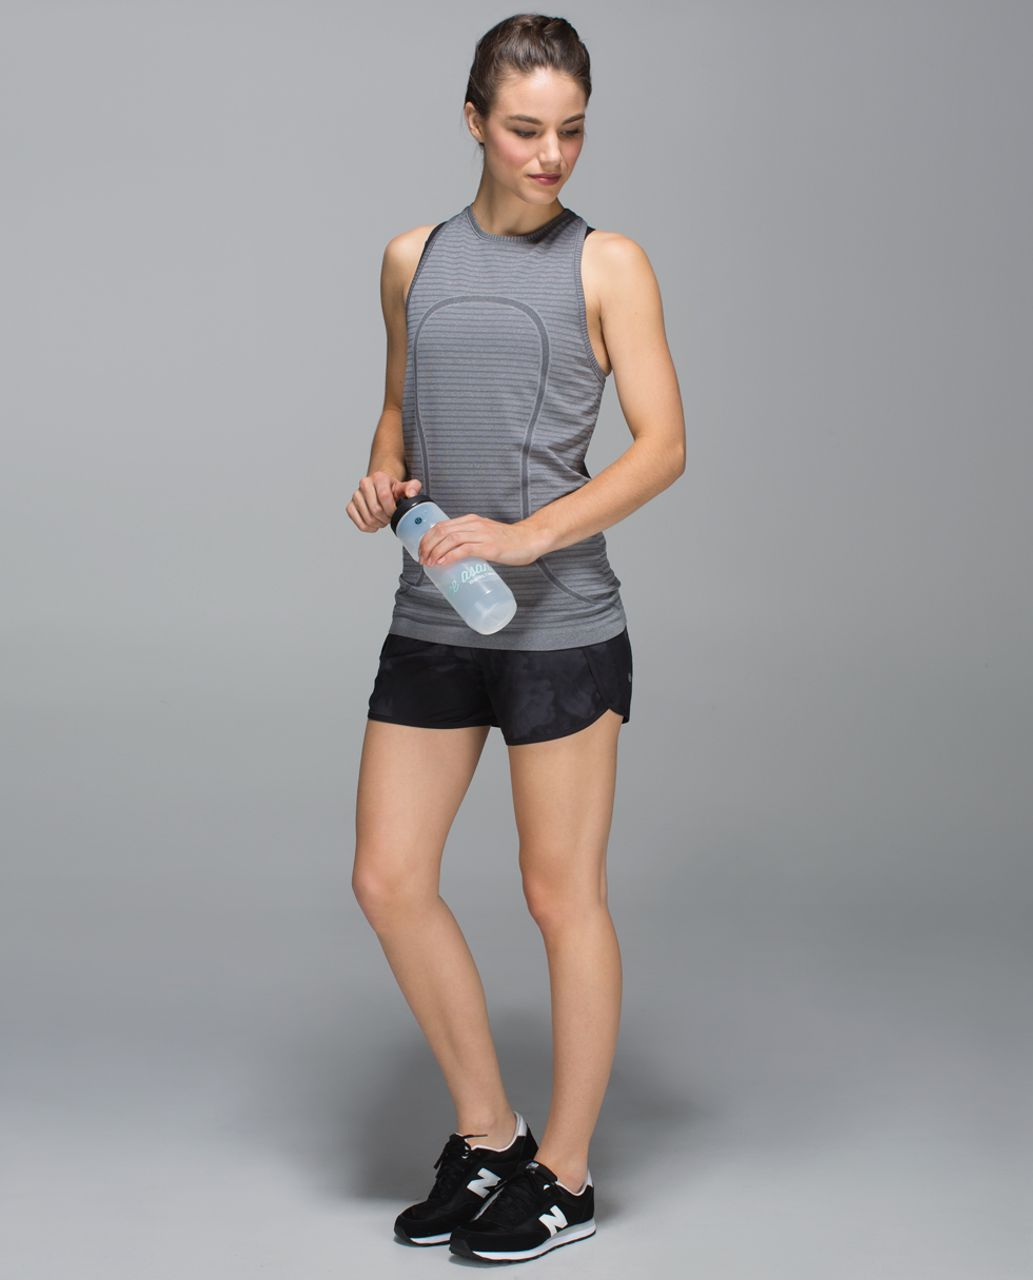 Lululemon Run Times Short *4-way Stretch - Dream Rose Deep Coal Black / Black